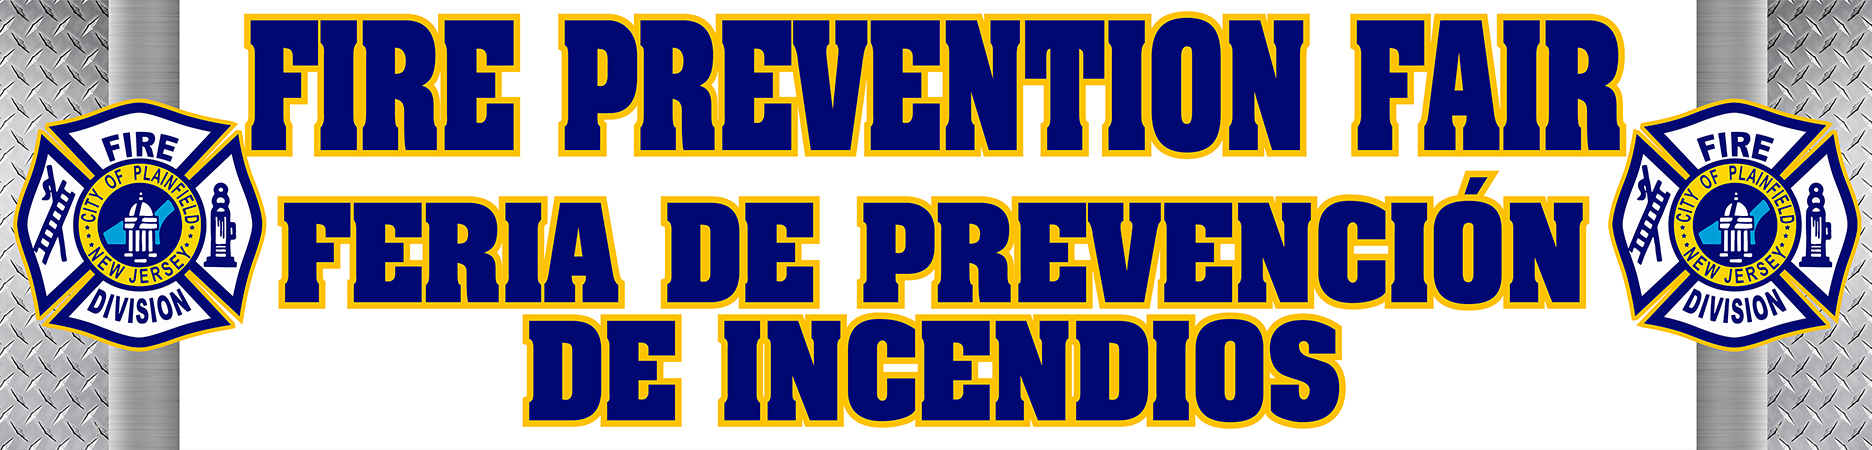 fire prevention banner.jpg